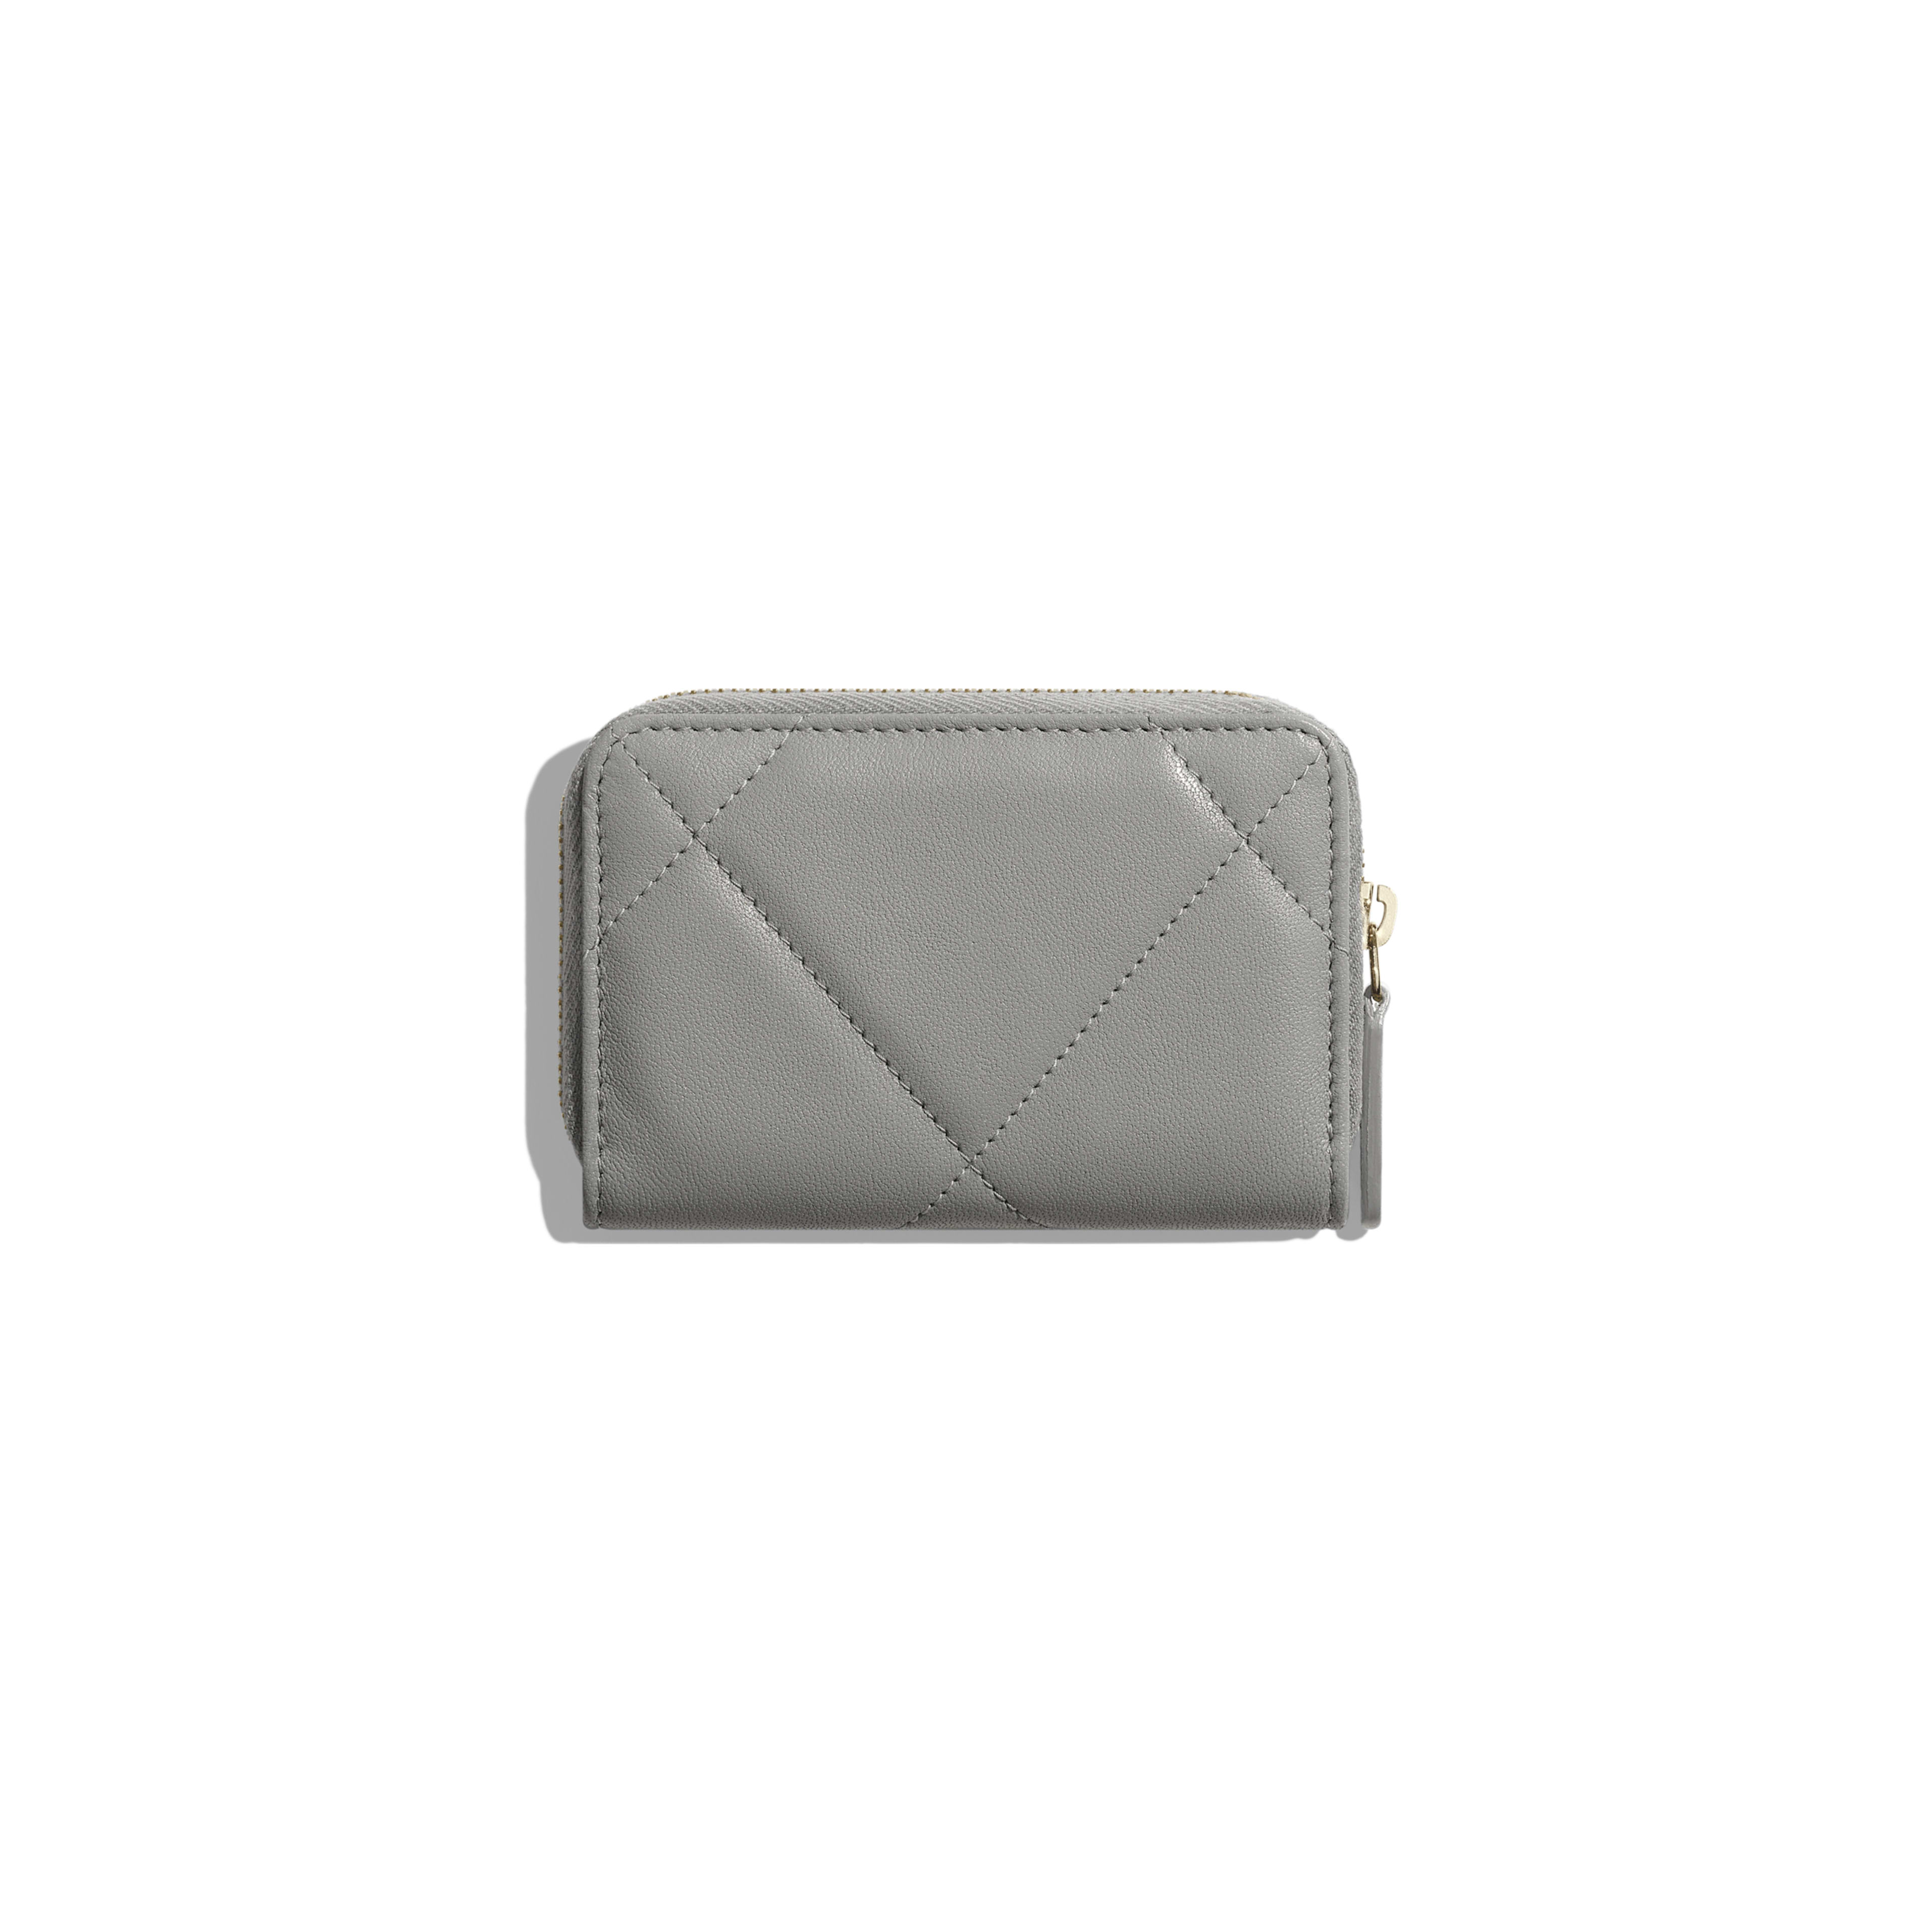 CHANEL 19 Zipped Coin Purse - Grey - Lambskin, Gold-Tone, Silver-Tone & Ruthenium-Finish Metal - Alternative view - see full sized version